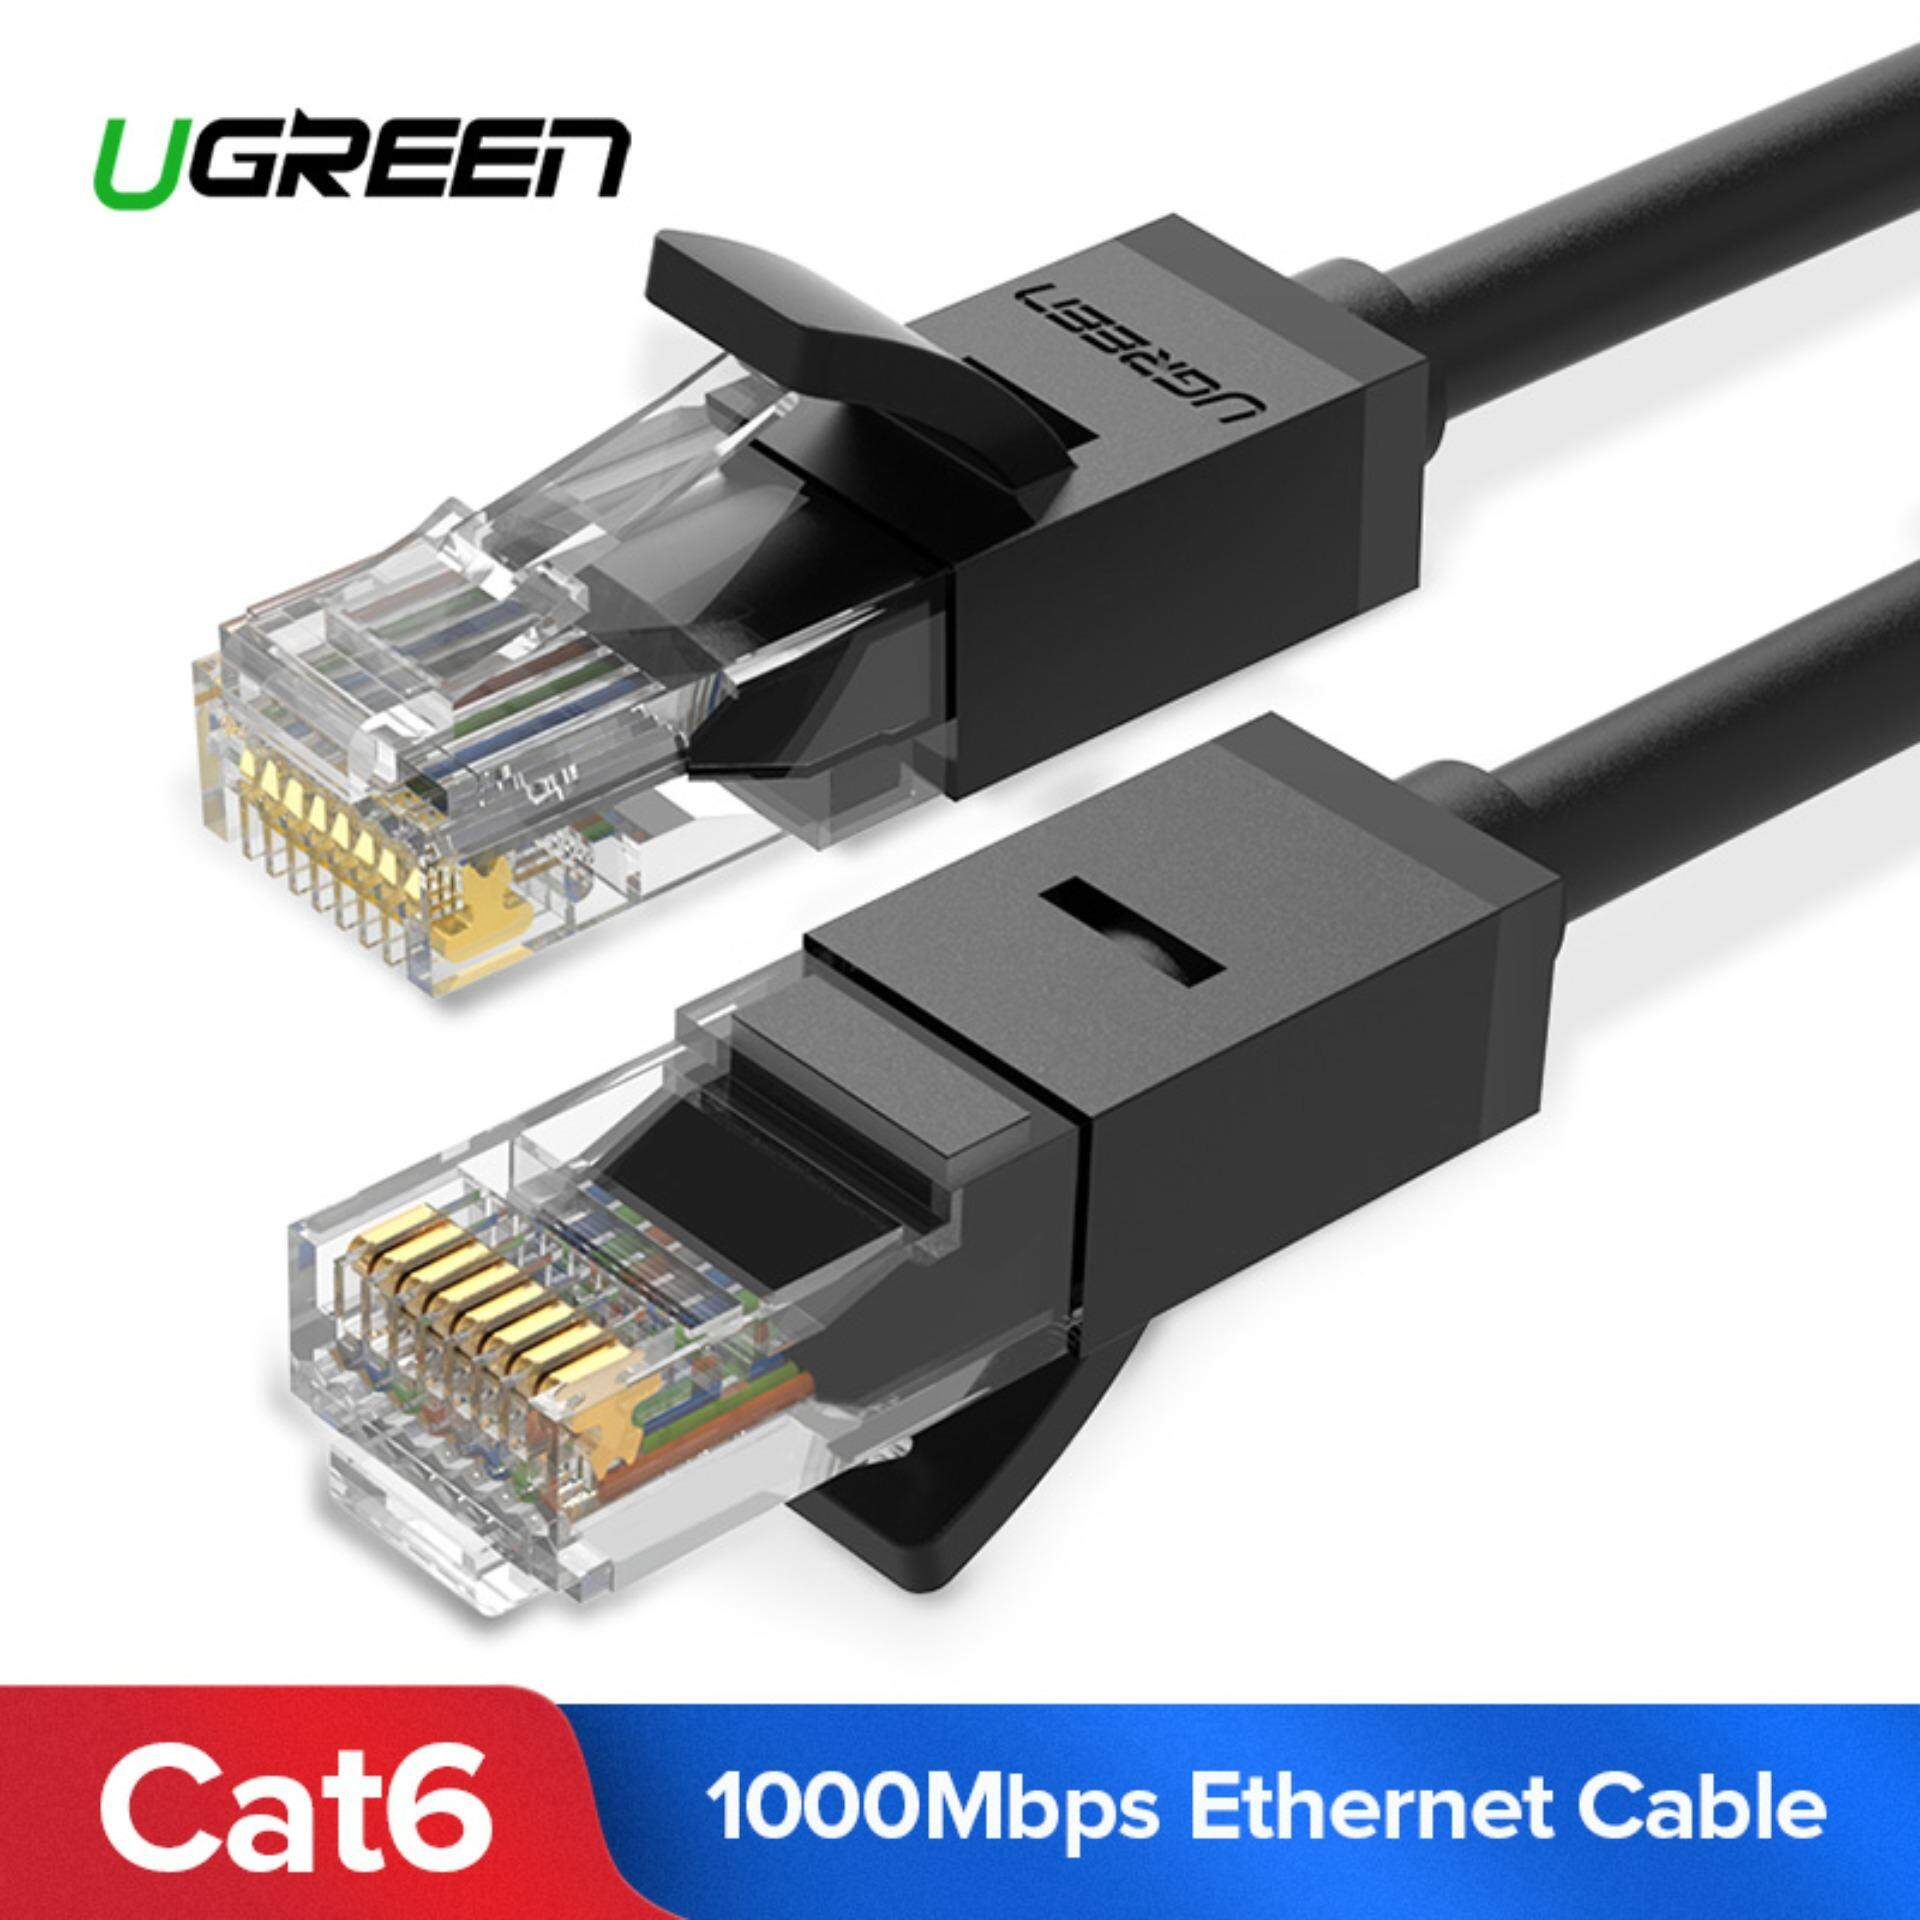 Computer Laptop Ethernet Cables For The Best Prices In Malaysia Electrical Wiring Youtube Together With Sewing Machine 2 Pin Ugreen 25 Meter Cat6 Patch Cable Gigabit Rj45 Network Wire Lan Plug Connector